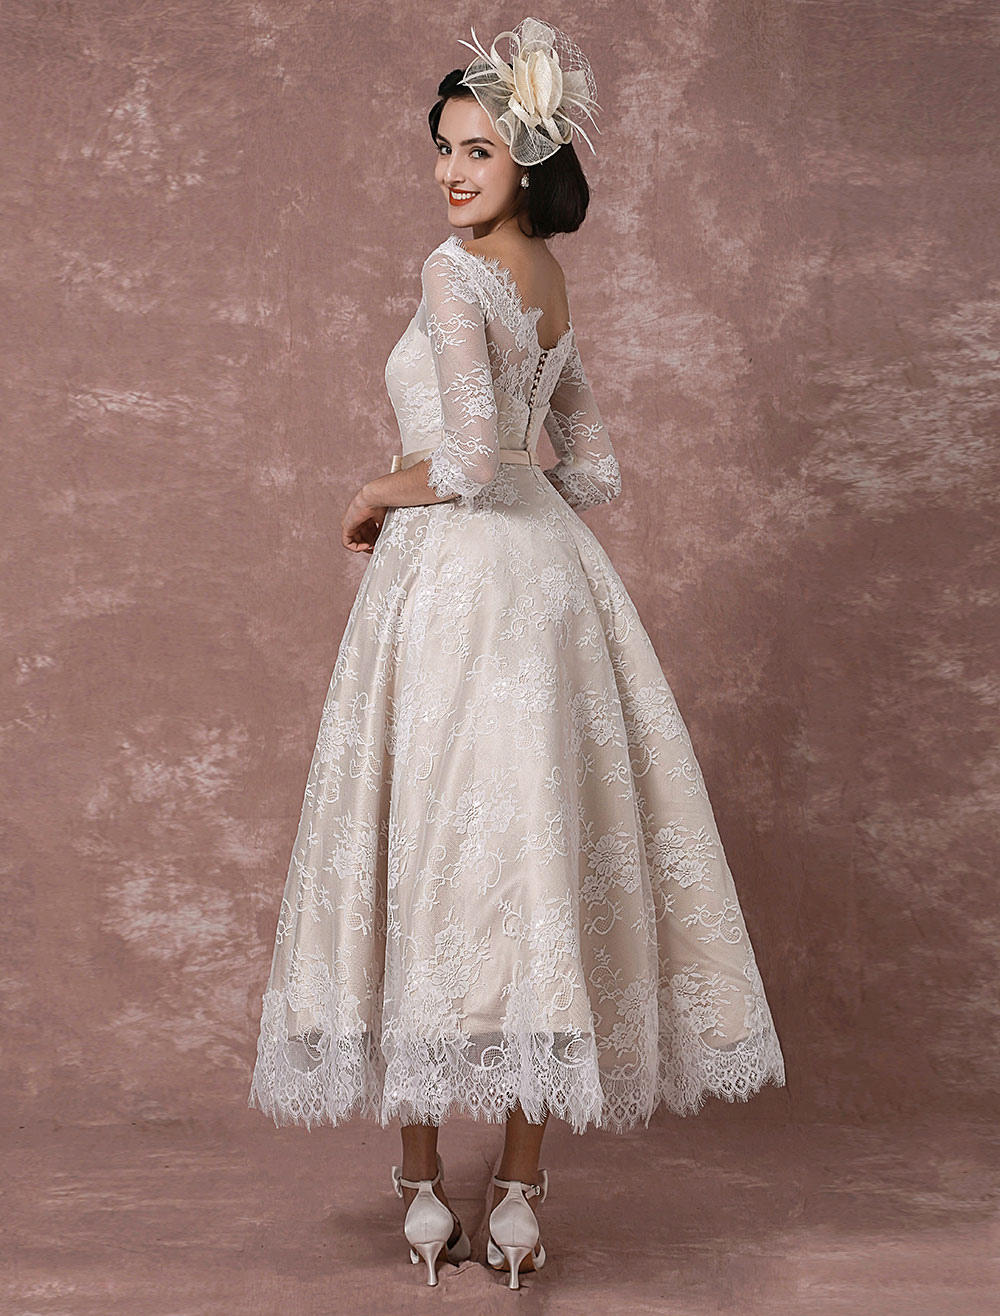 Lace Wedding Dress Vintage Bateau Champagne Half Sleeves Bridal Gown A Line Backless Tea Length Sash Reception Milanoo